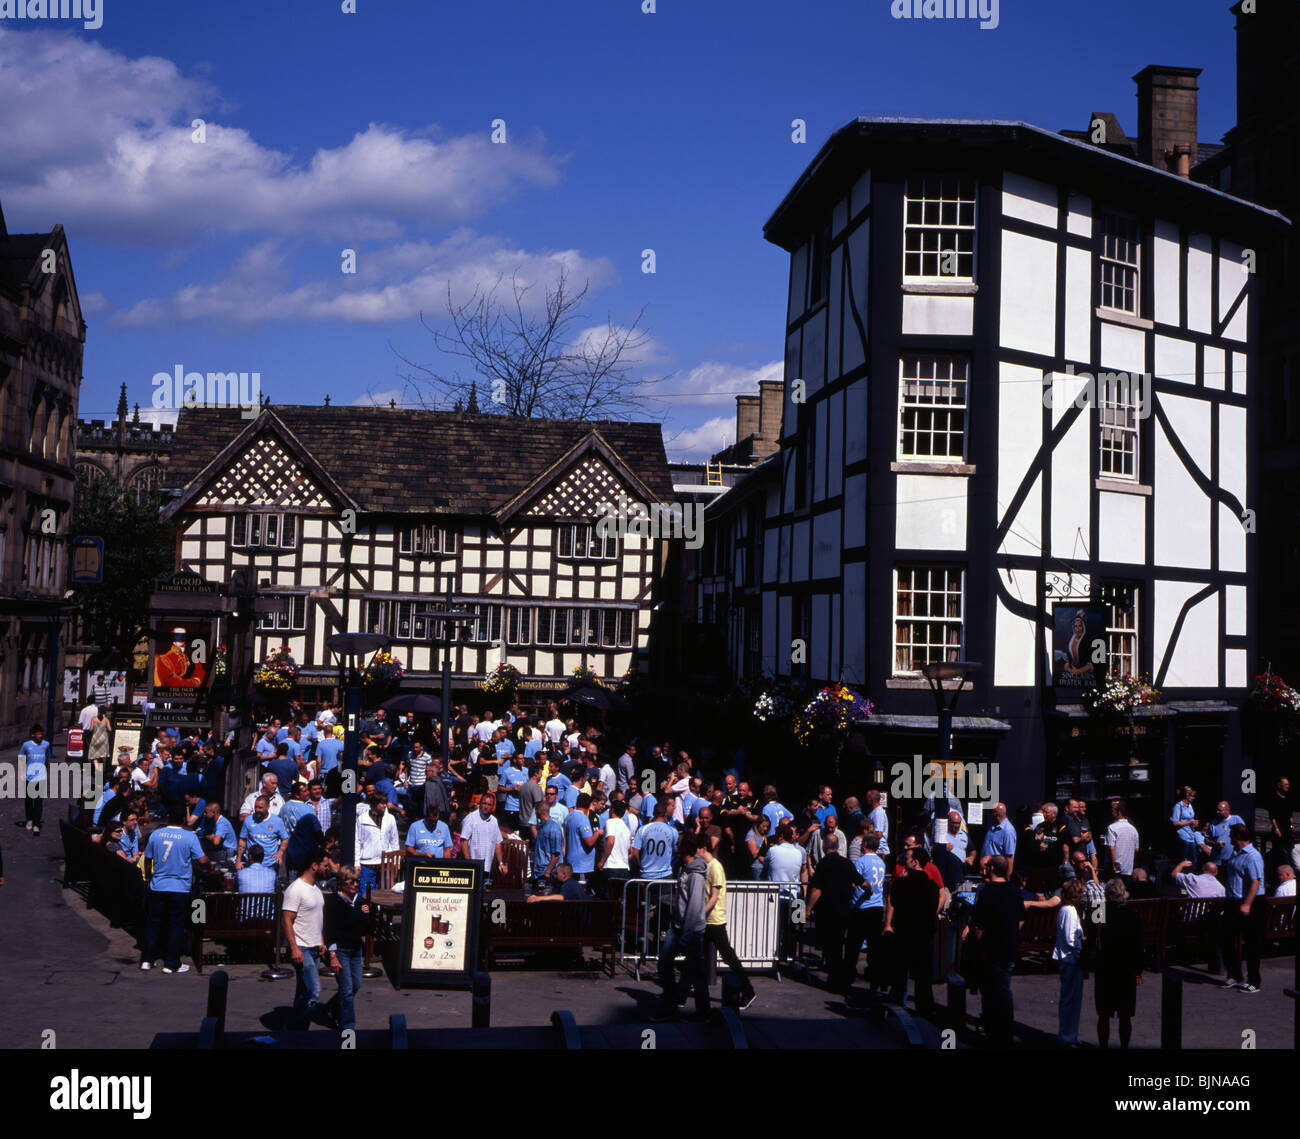 Sinclairs Oyster Bar and The Duke of Wellington Pub match day with Manchester City Supporters Manchester England - Stock Image